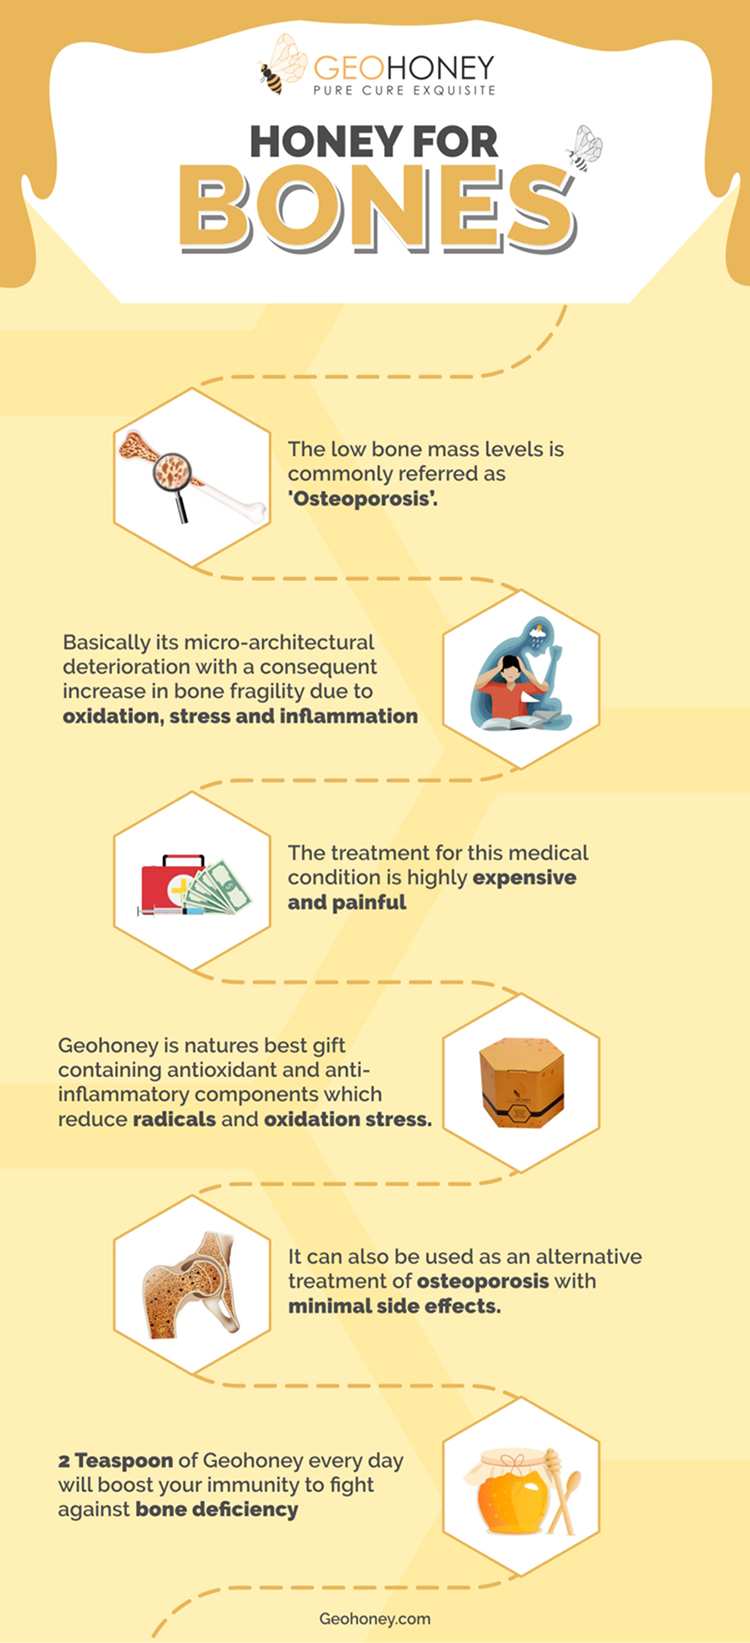 Honey for bones infographic